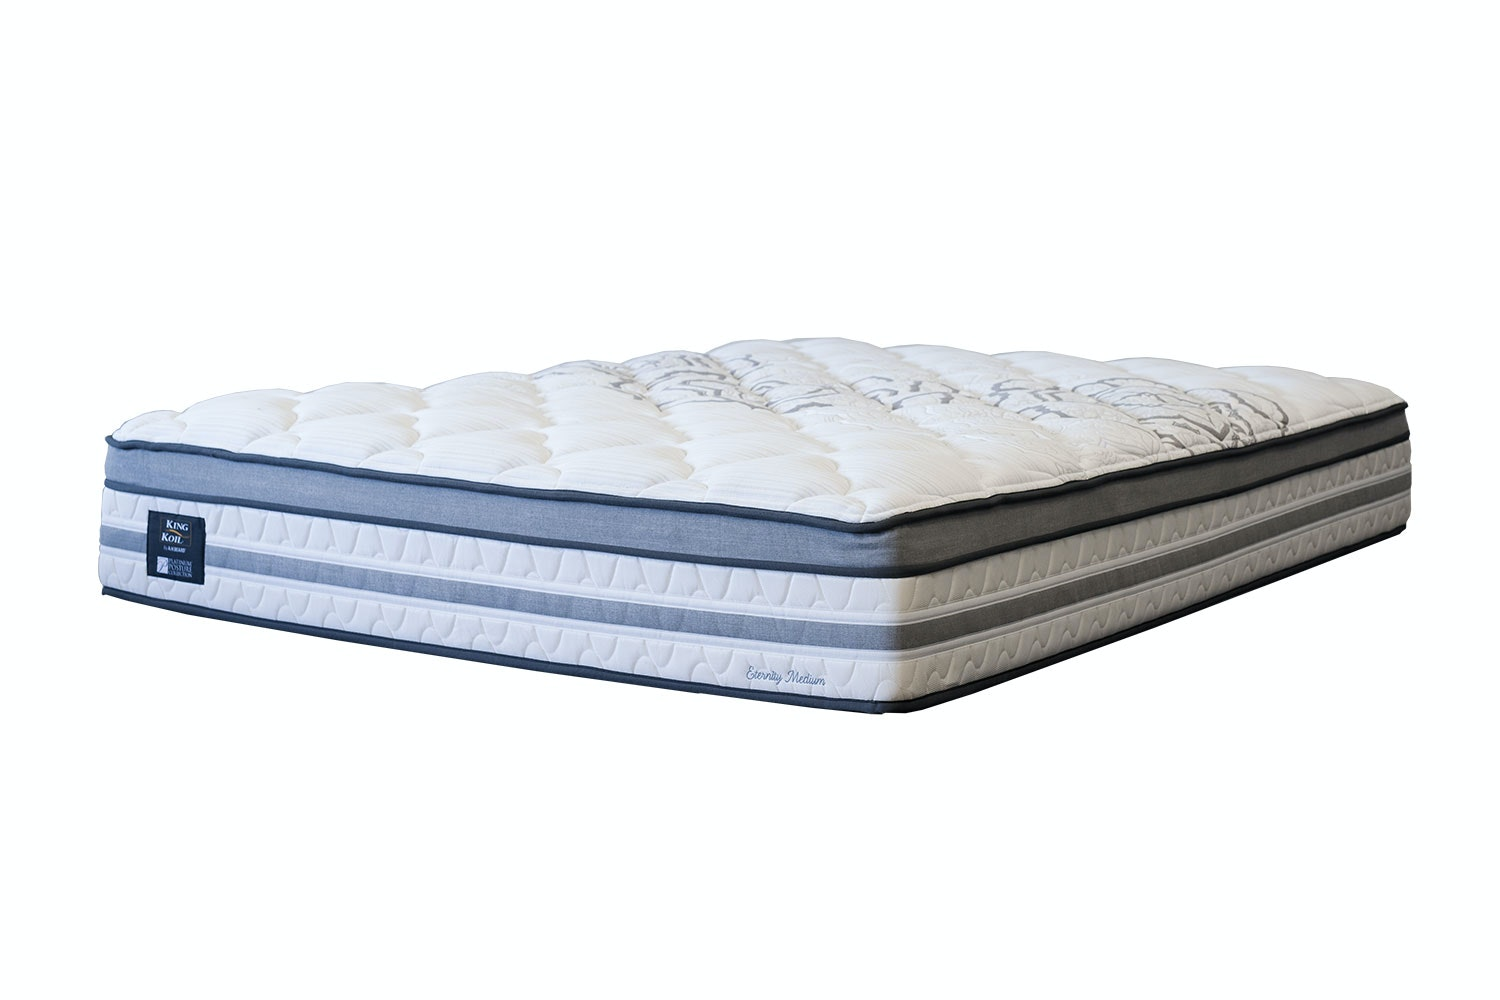 Eternity Medium Long Single Mattress by King Koil